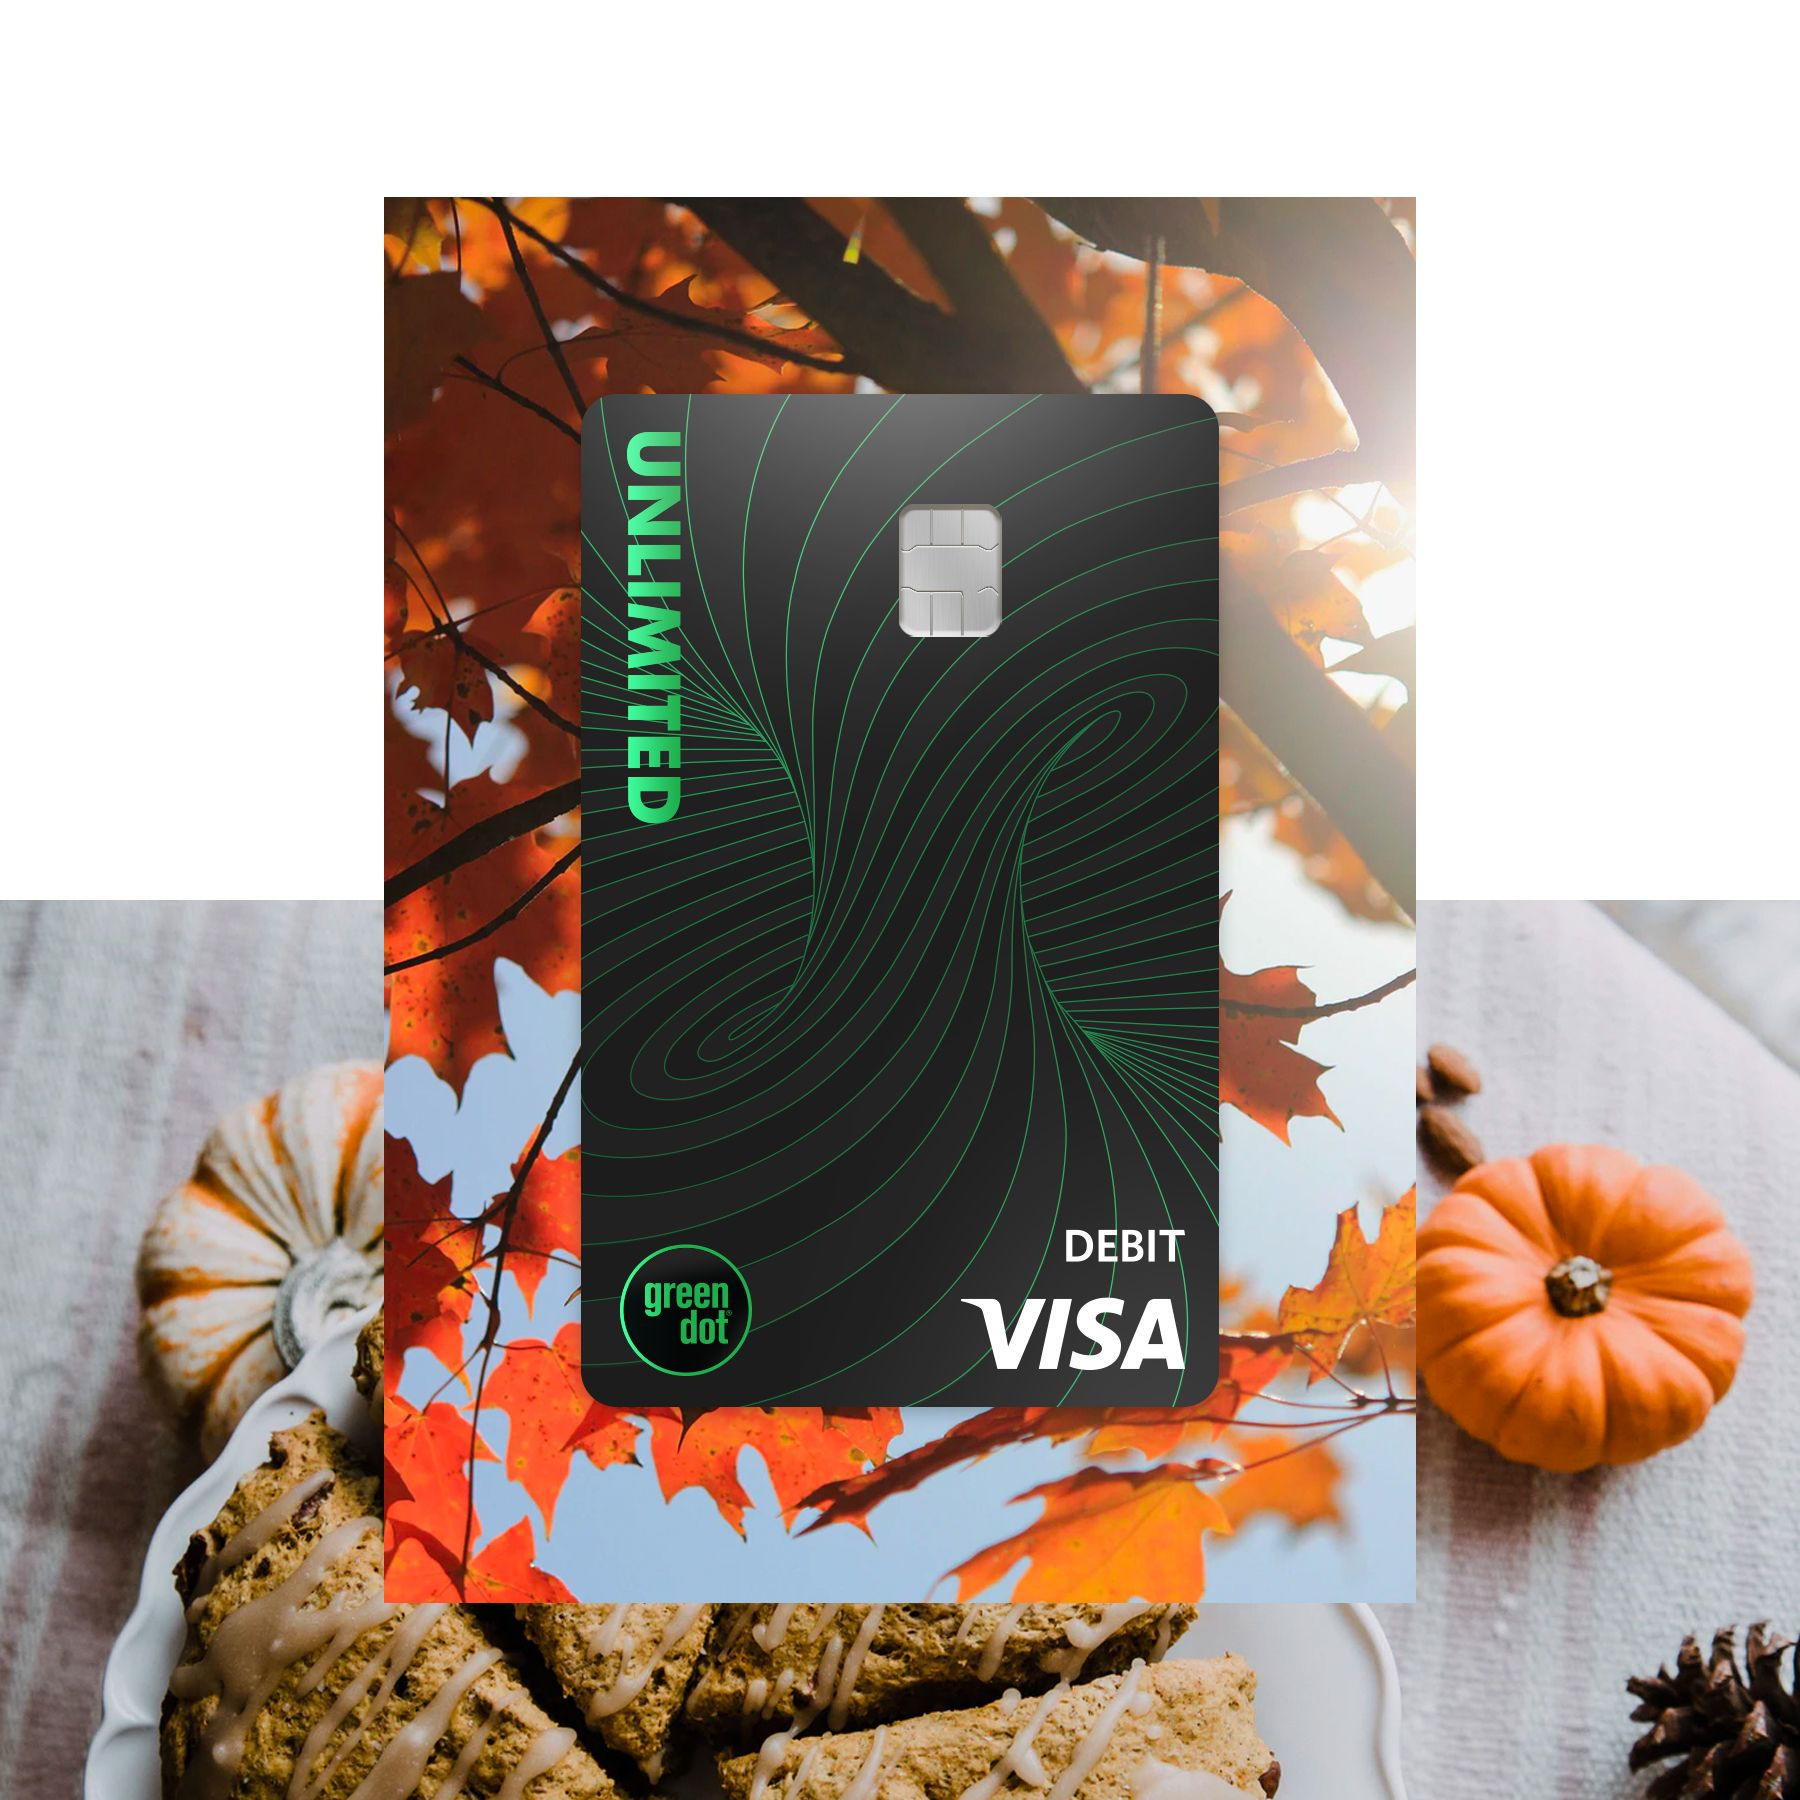 Fall into good habits when you use the unlimited cash back